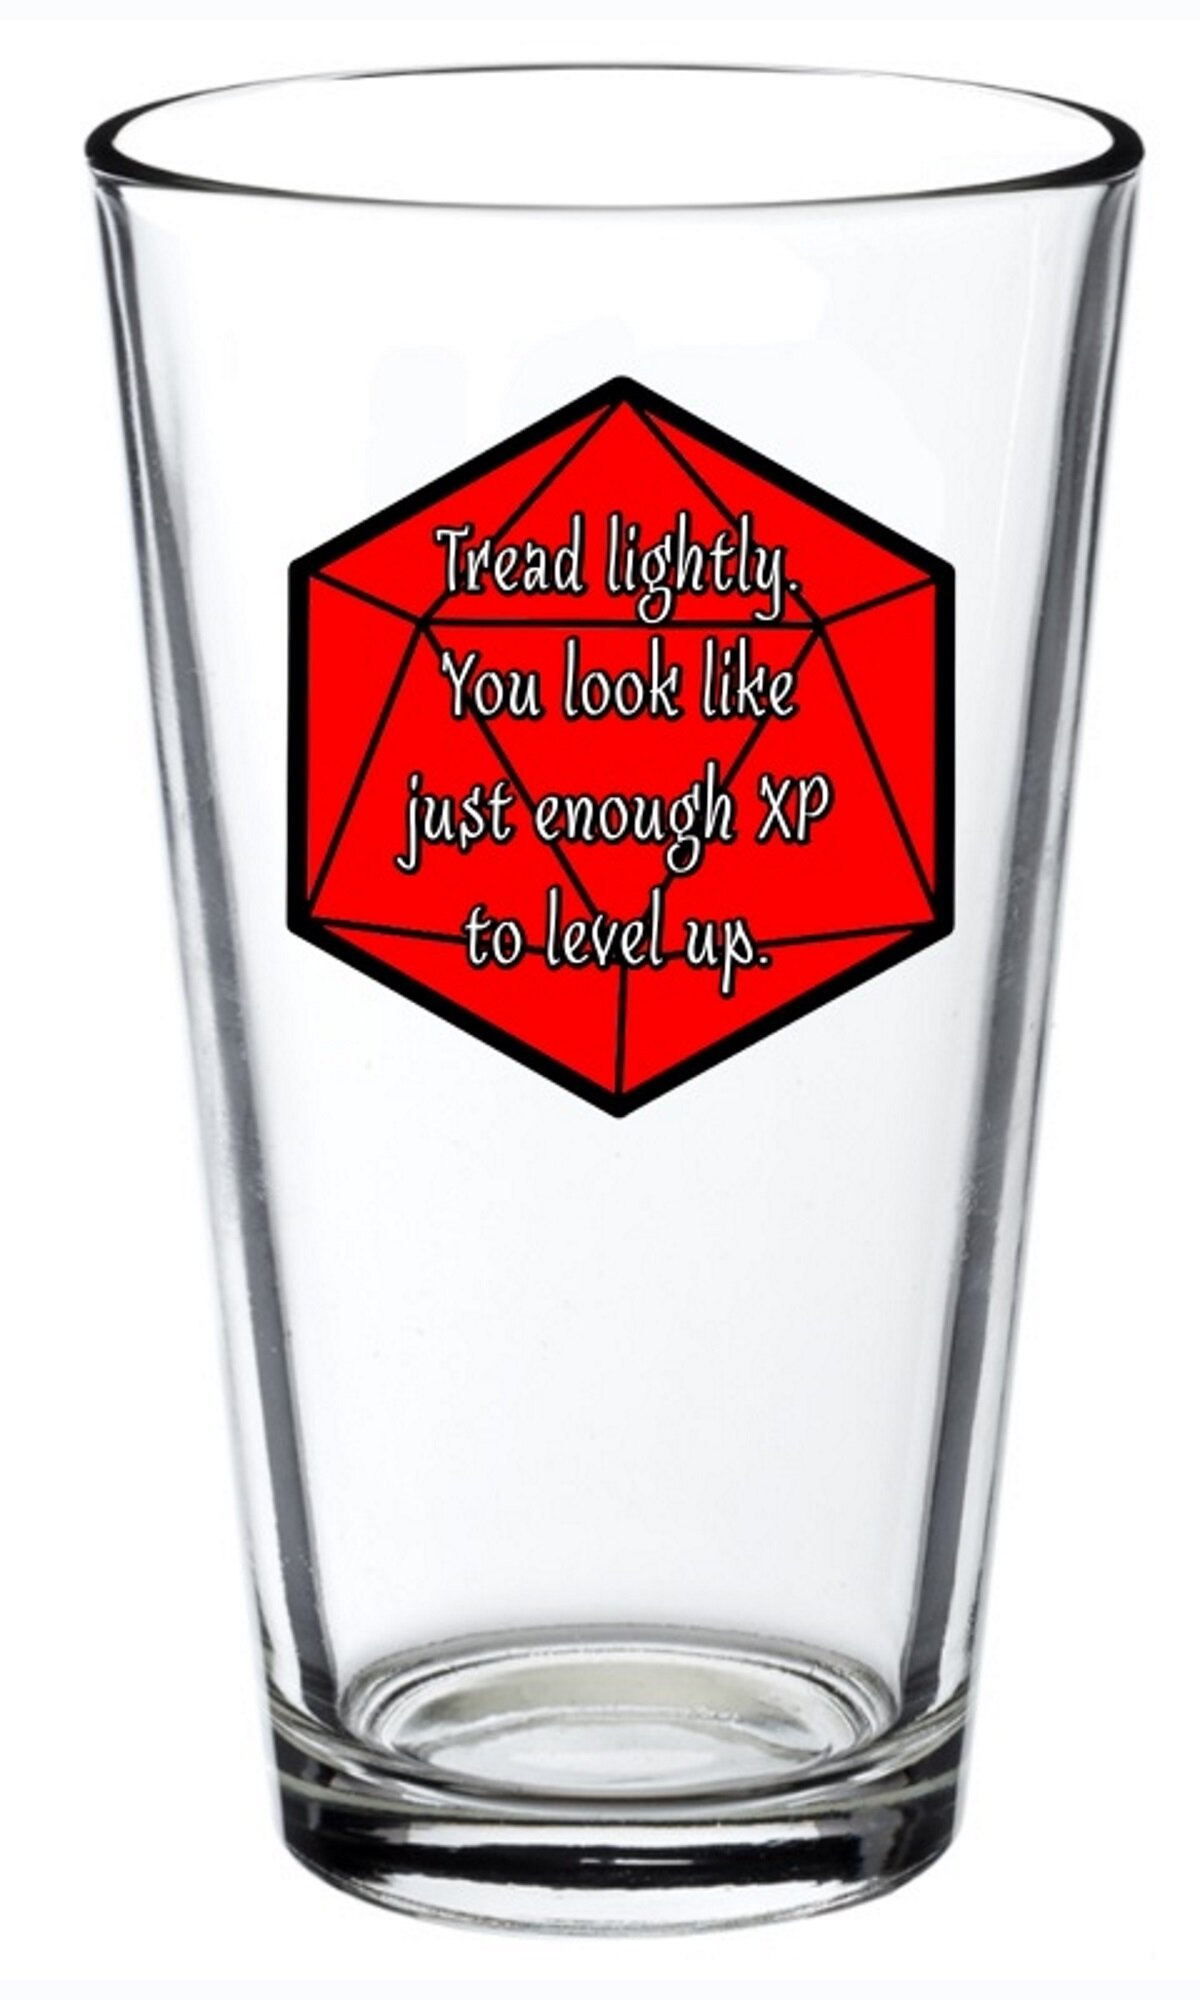 Tread Lightly. You Look Like Just Enough XP to Level Up.